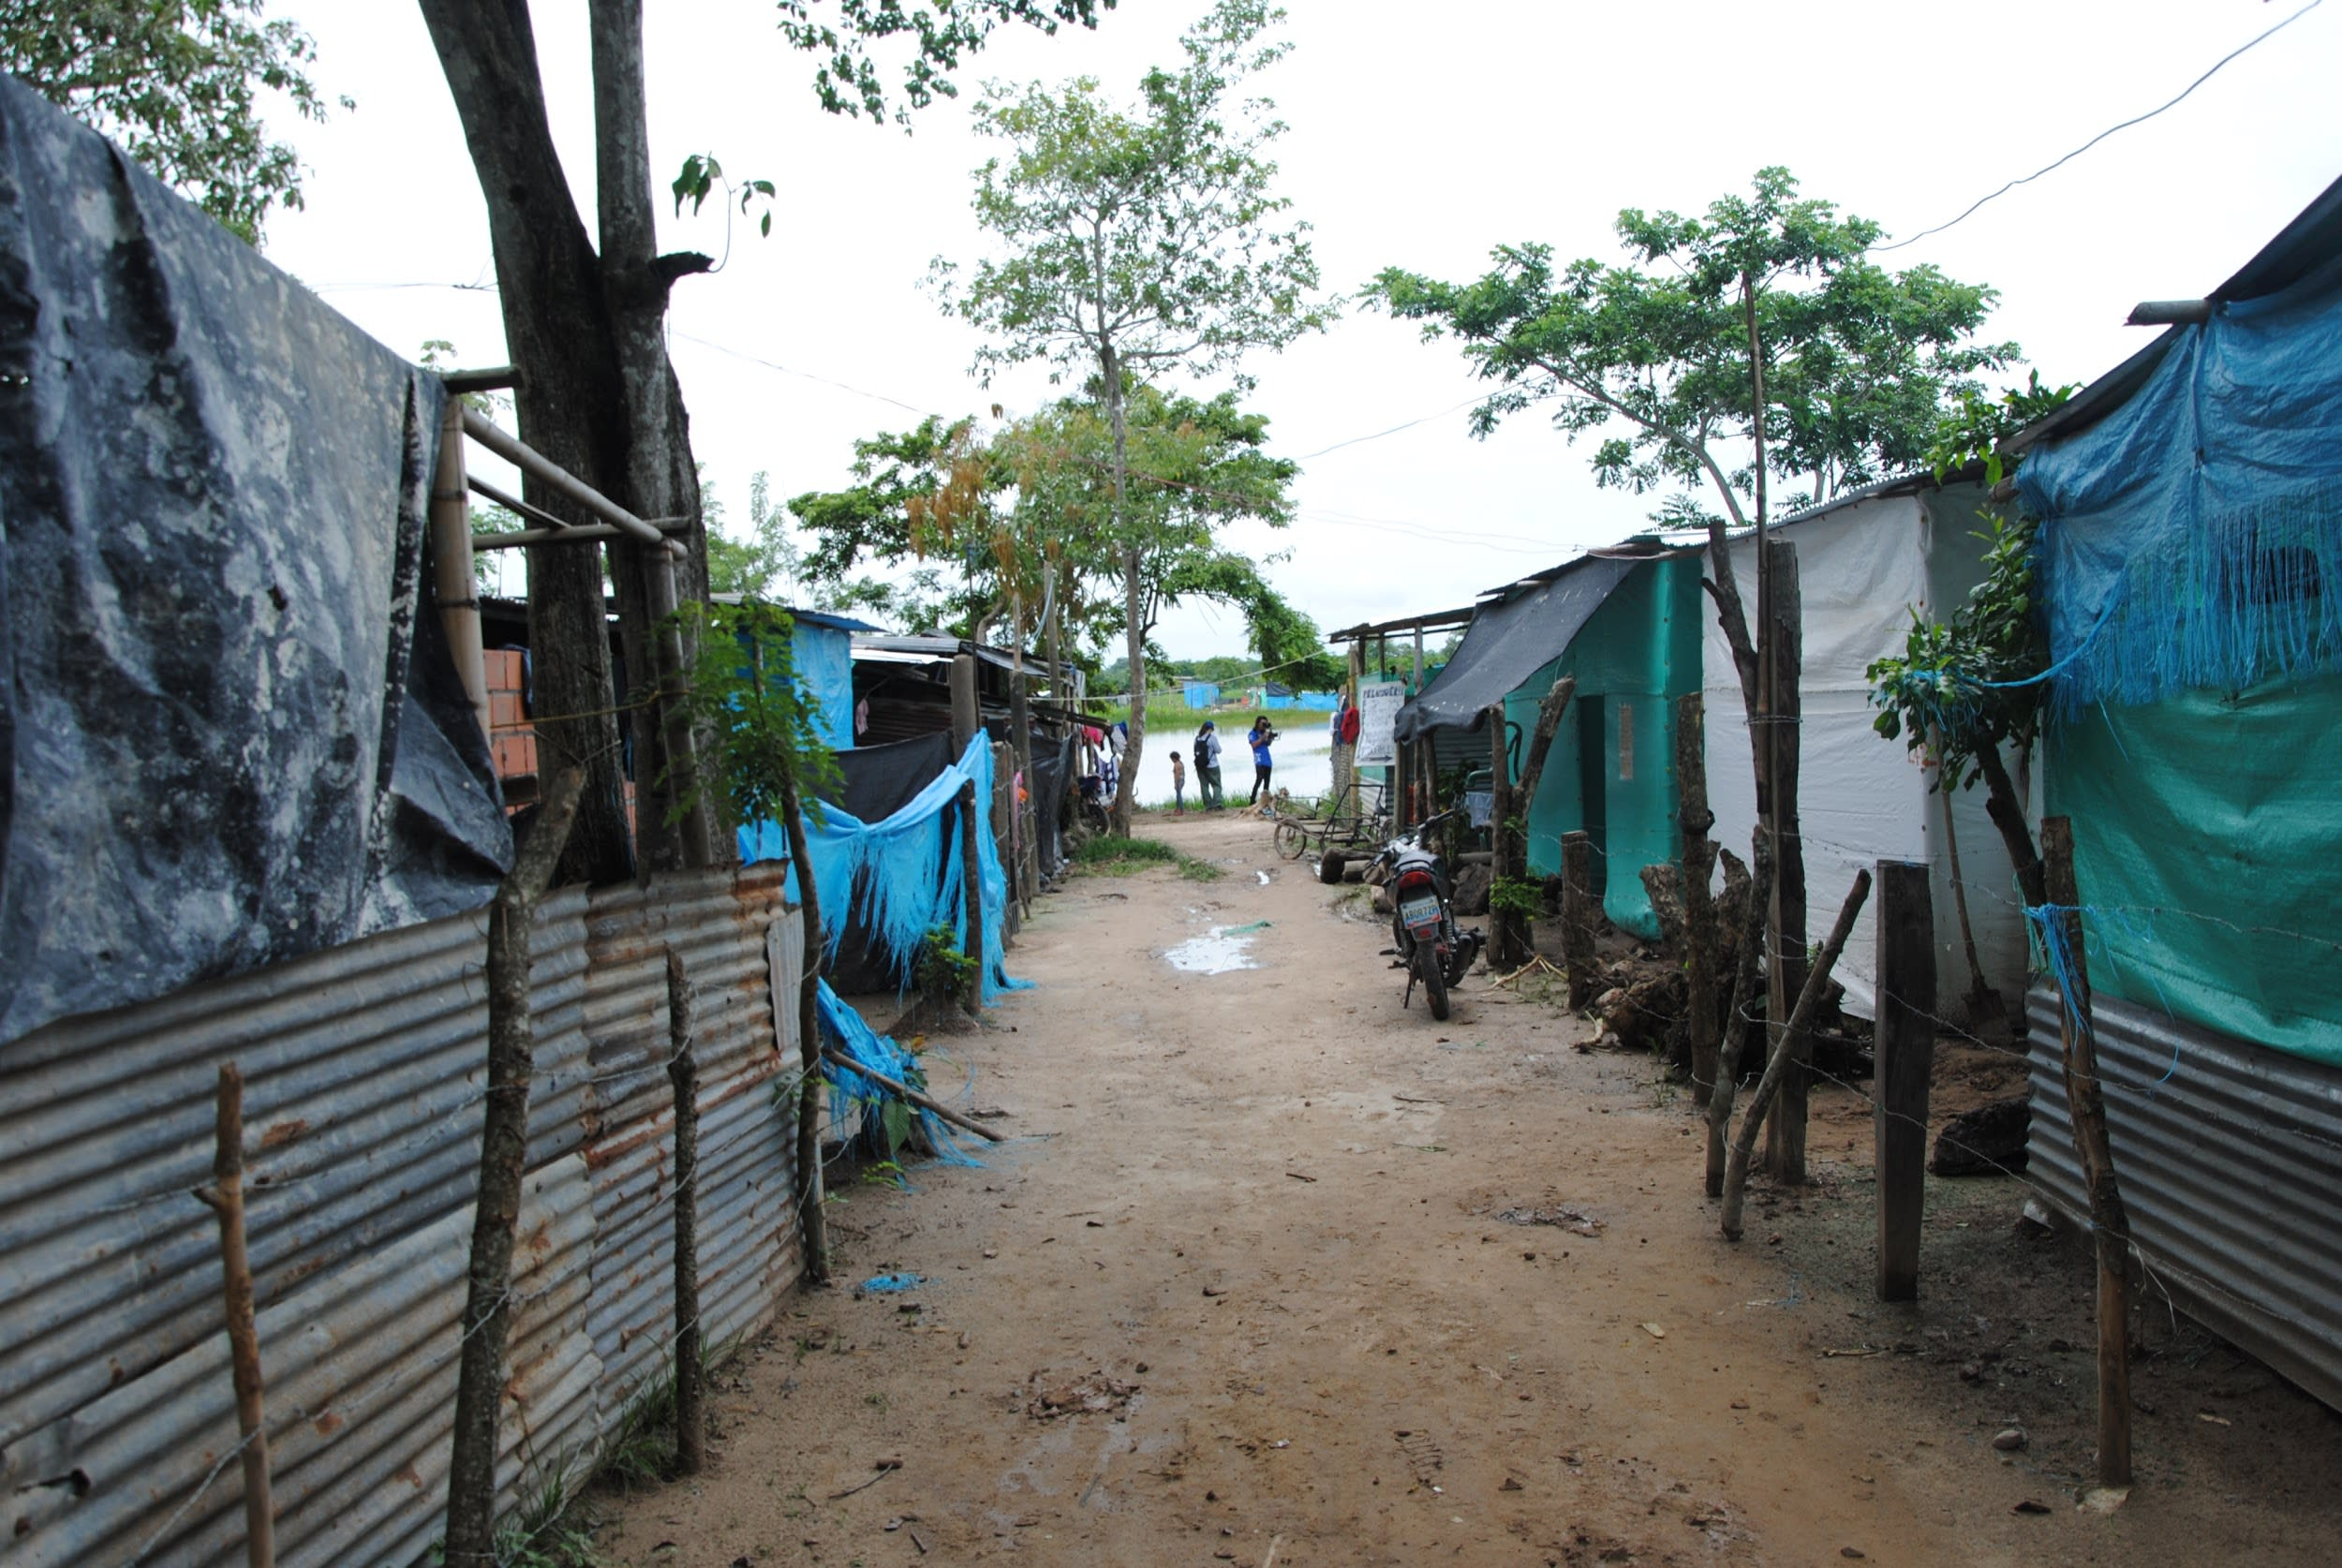 Makeshift houses built by immigrants in Colombia's Auraca region (CADENA)